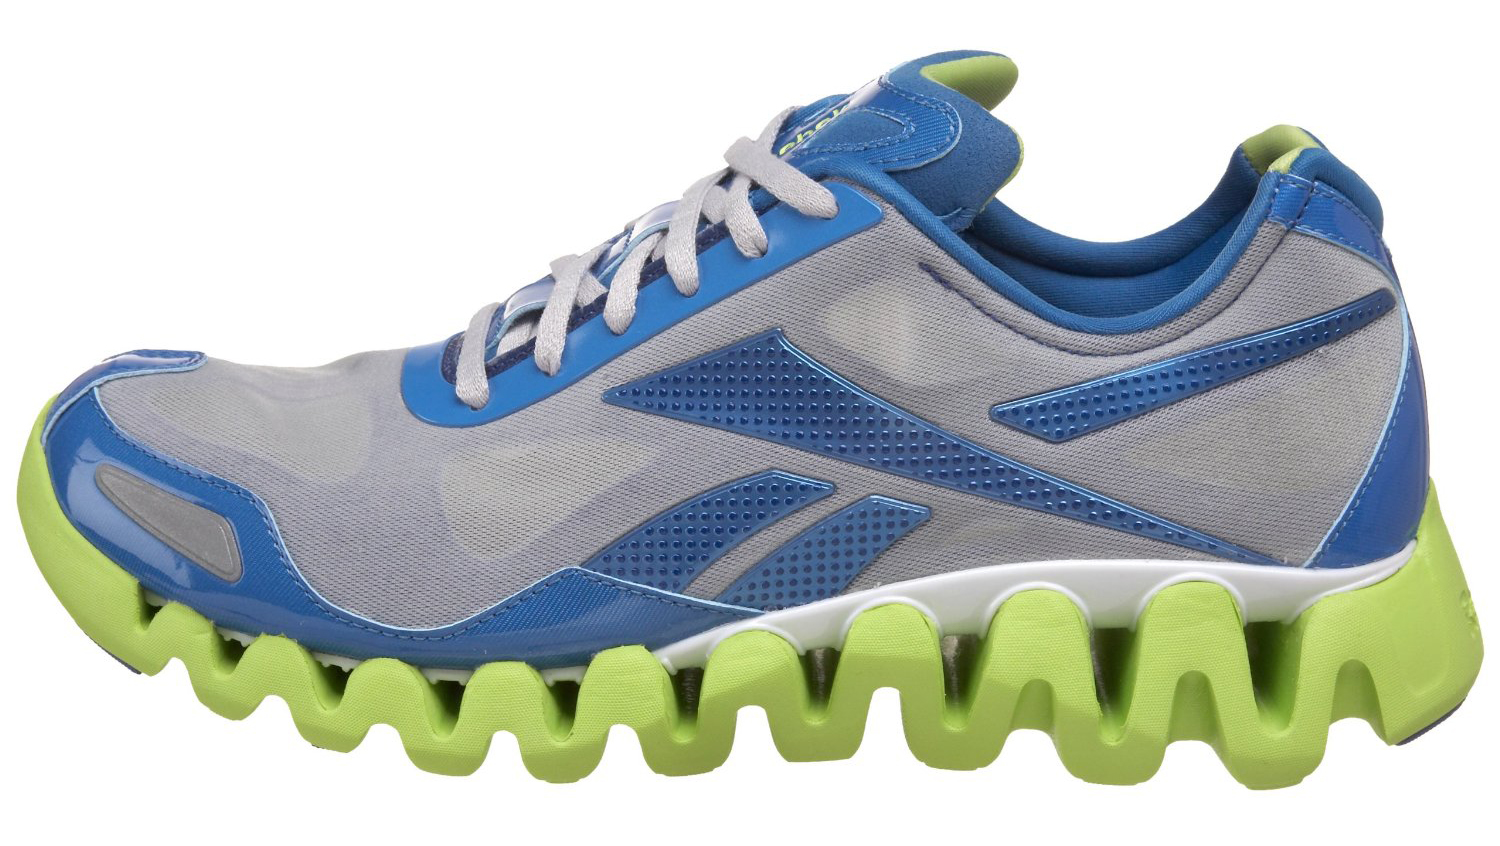 sport shoes reebok zigtech the mens fashion style